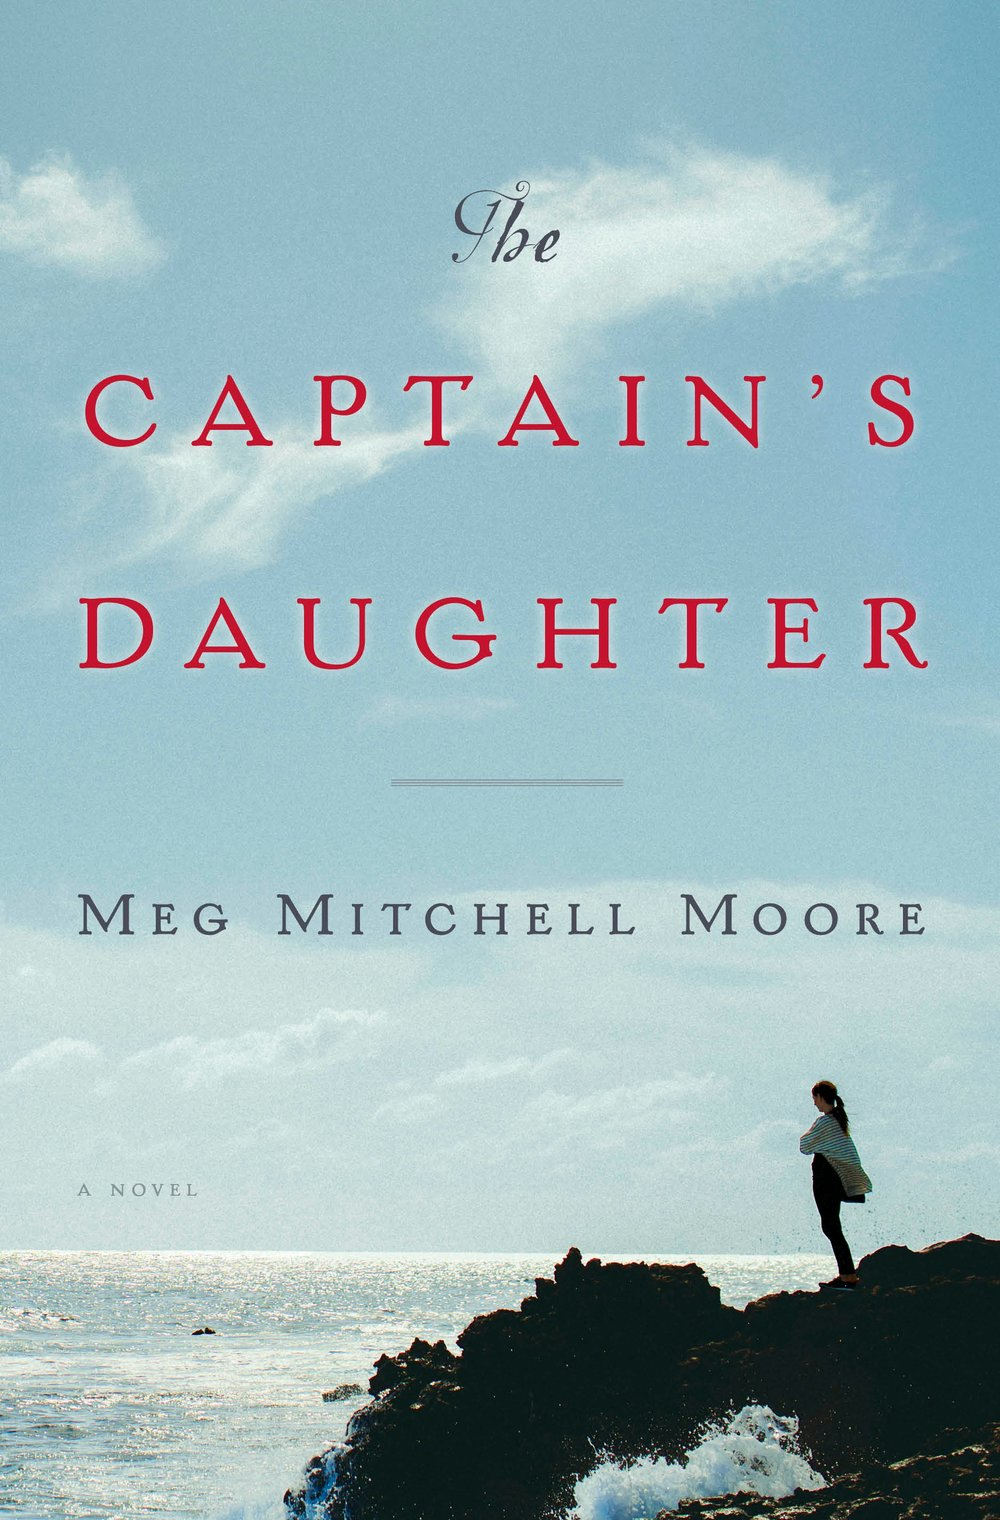 The Captain's Daughter  by Meg Mitchell Moore  Doubleday --- July 18, 2017